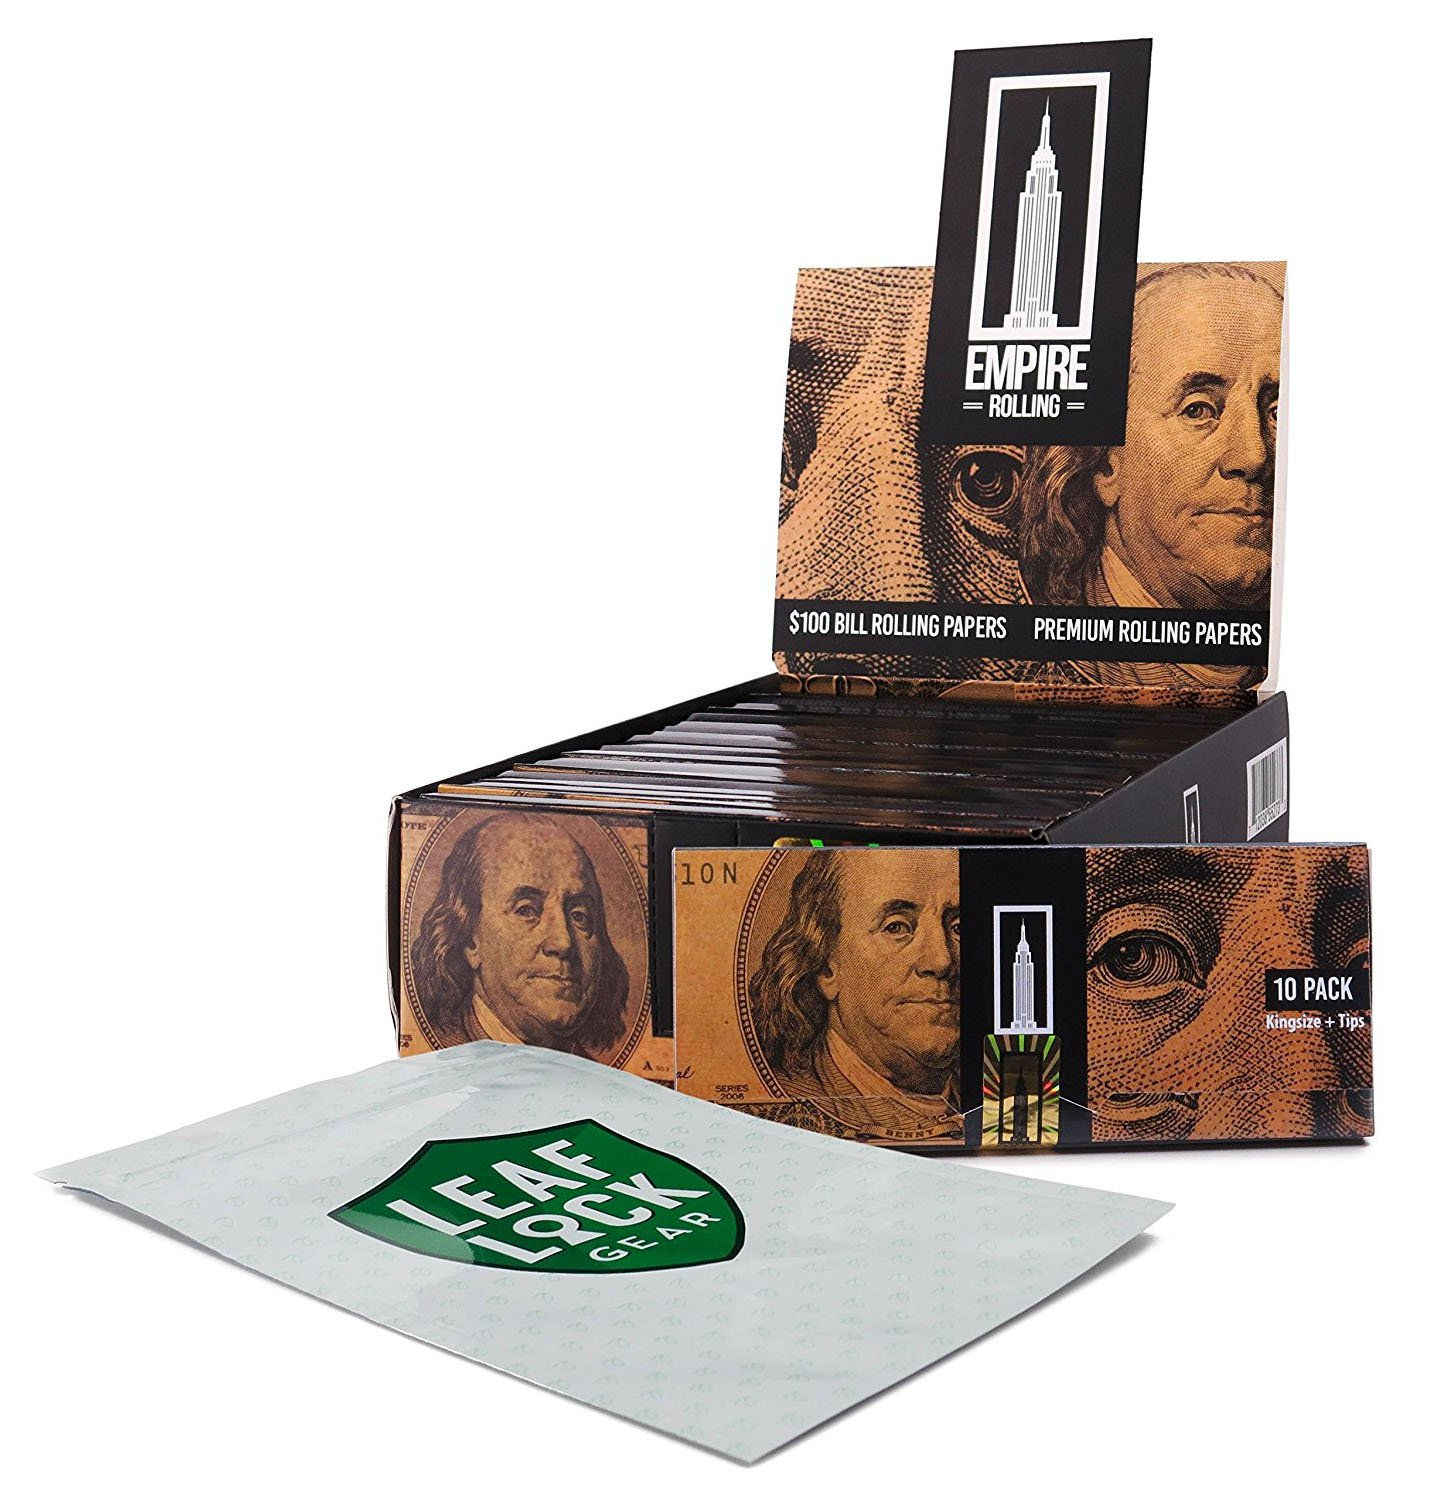 Empire King Size $100 Bill Rolling Papers and Tips (24 Packs/Box) with Leaf Lock Gear Smell Proof Pouch